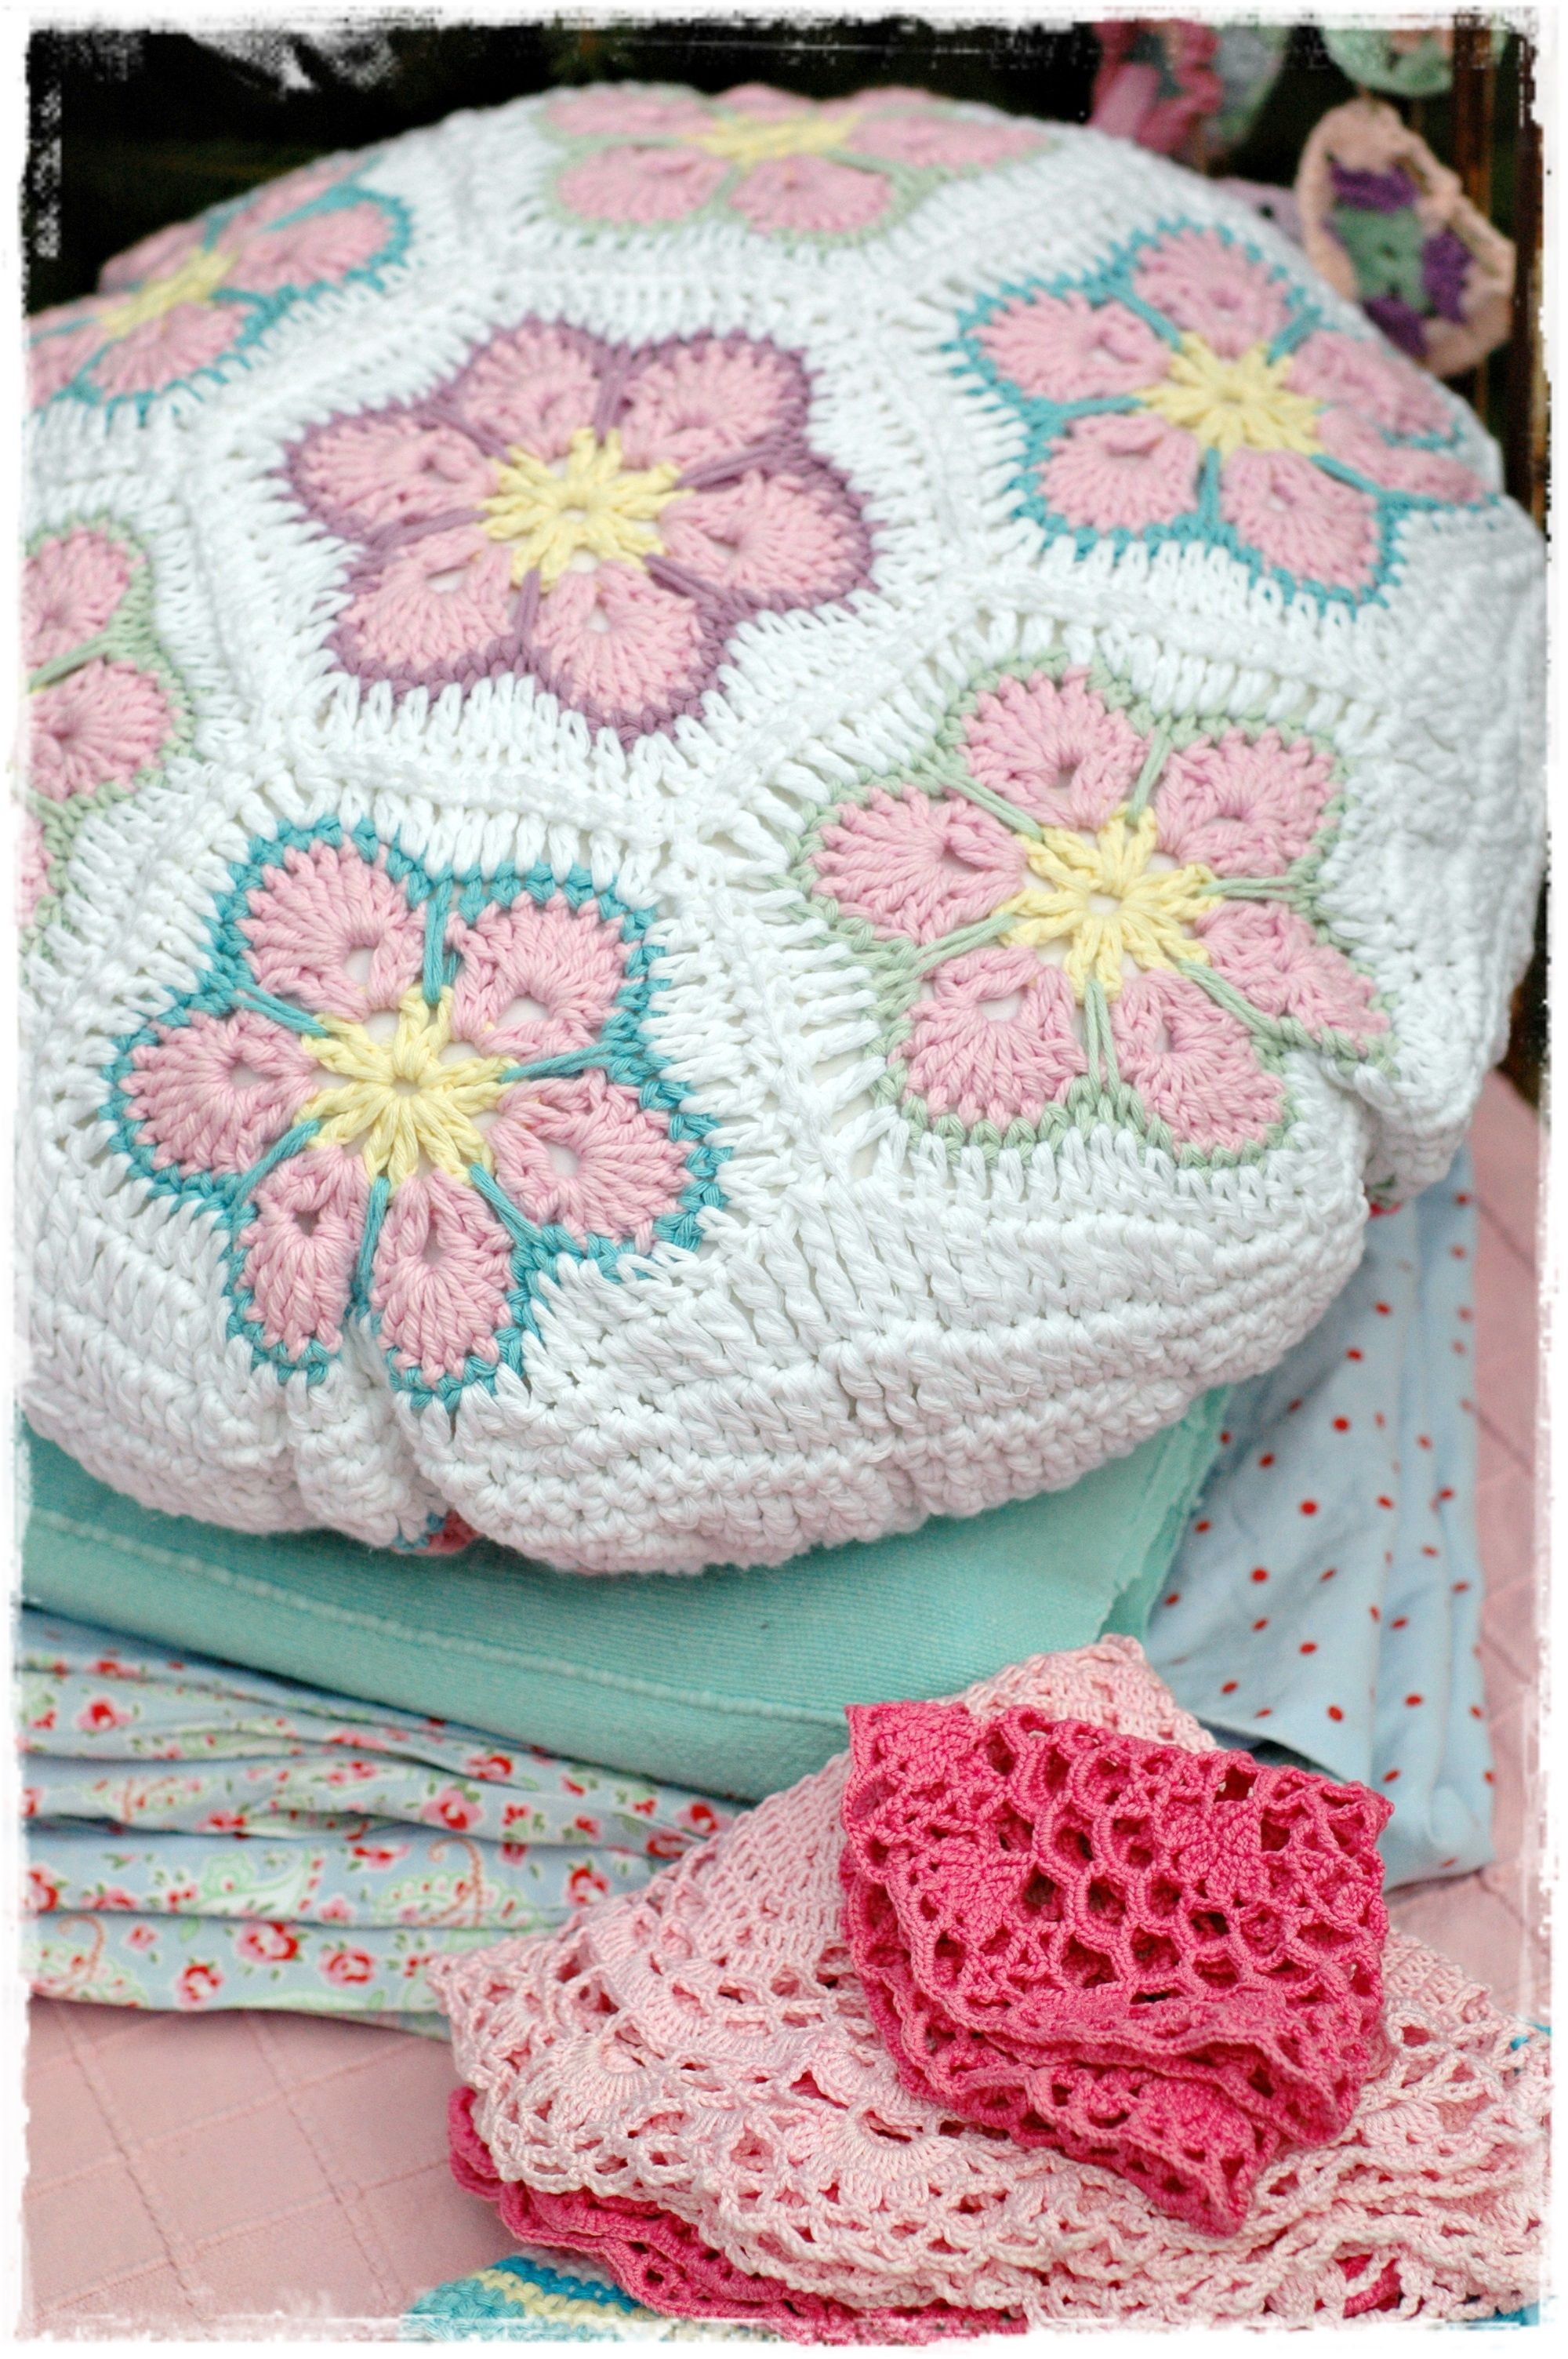 Como Hacer Cojines De Ganchillo Crochet African Flowers Pillow Crochet Cojines Pillows